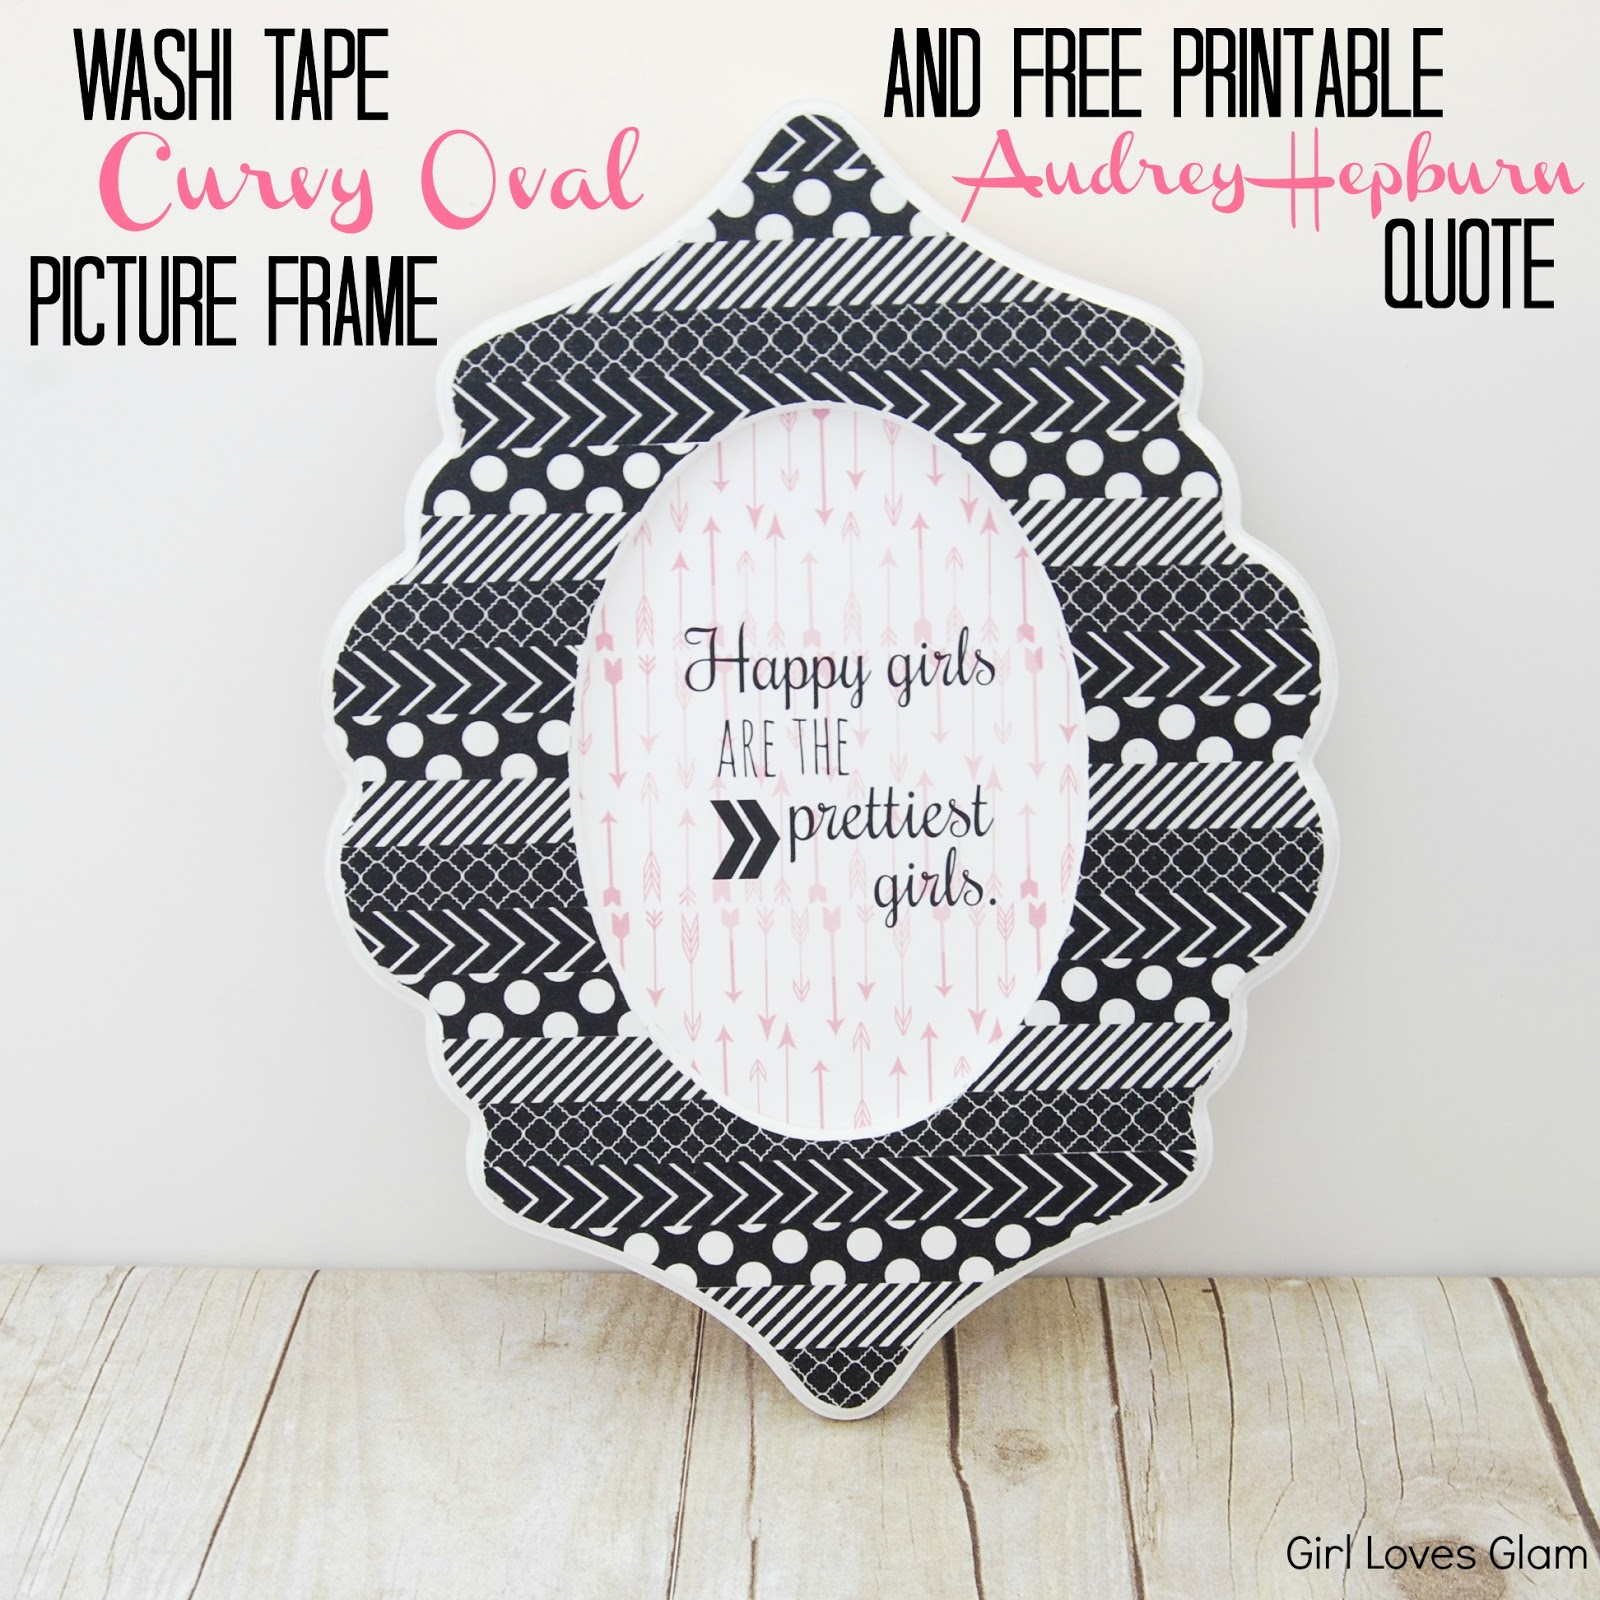 picture about Printable Quotes to Frame known as Do-it-yourself Washi Tape Curvy Oval Body and Audrey Hepburn Totally free